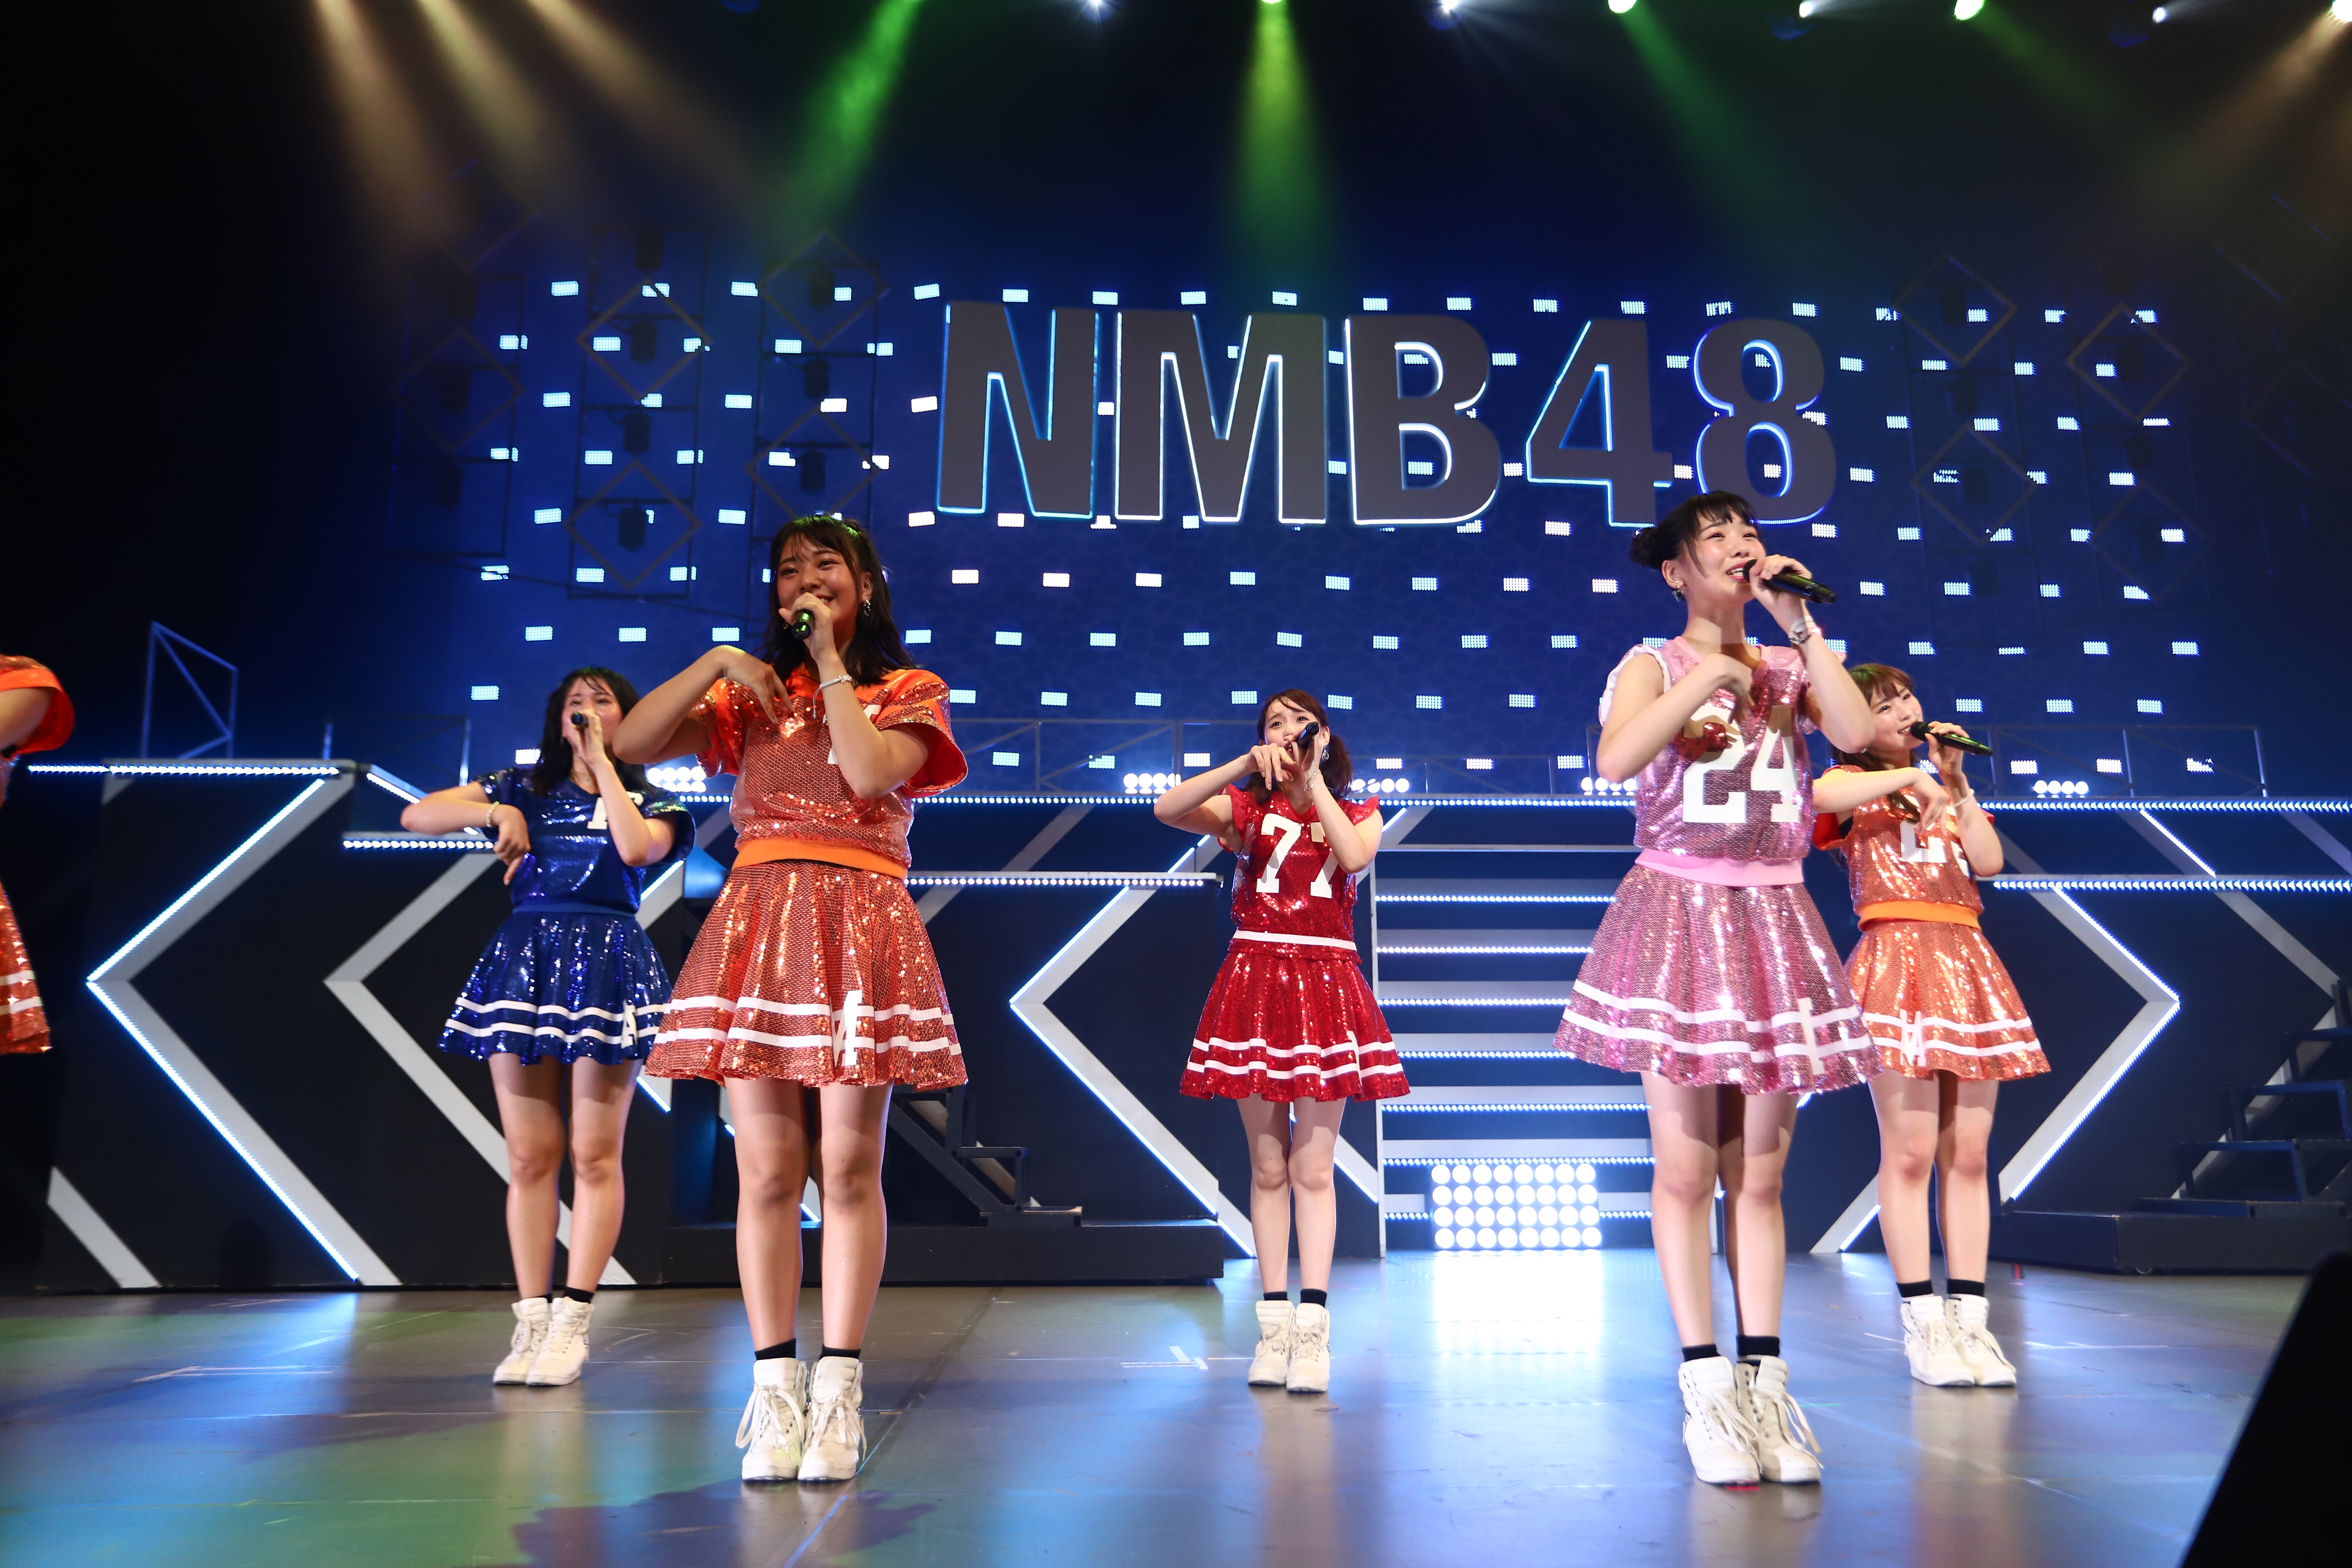 NMB48 LIVE TOUR 2018 名古屋 チームM公演-181